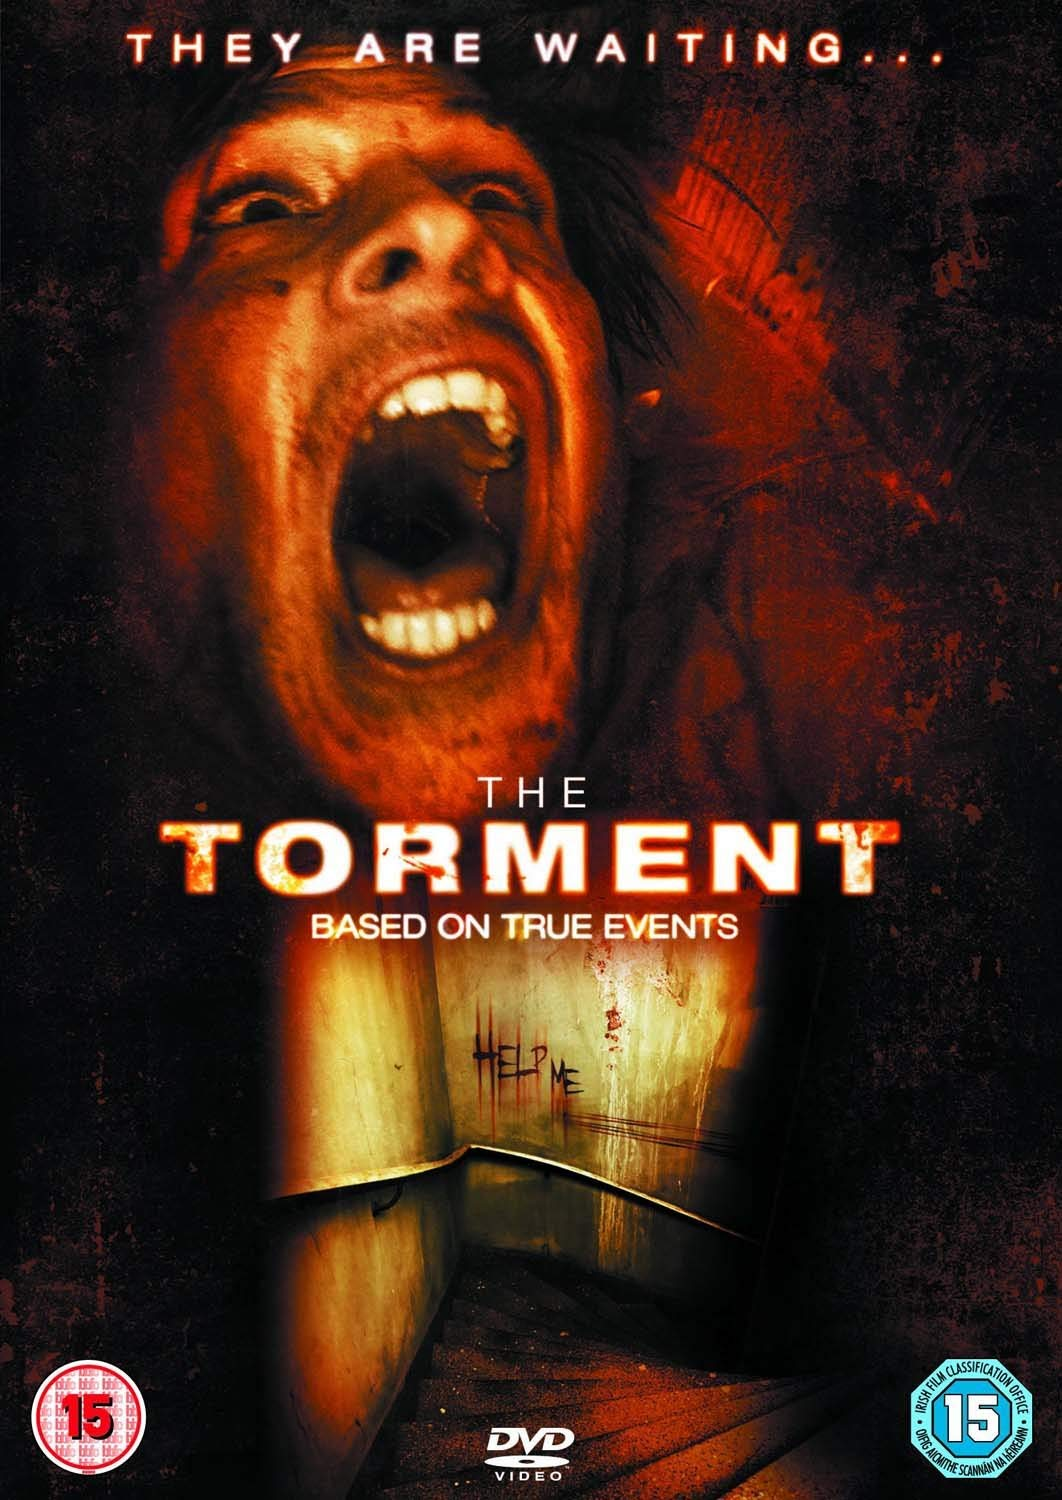 The Torment (DVD)